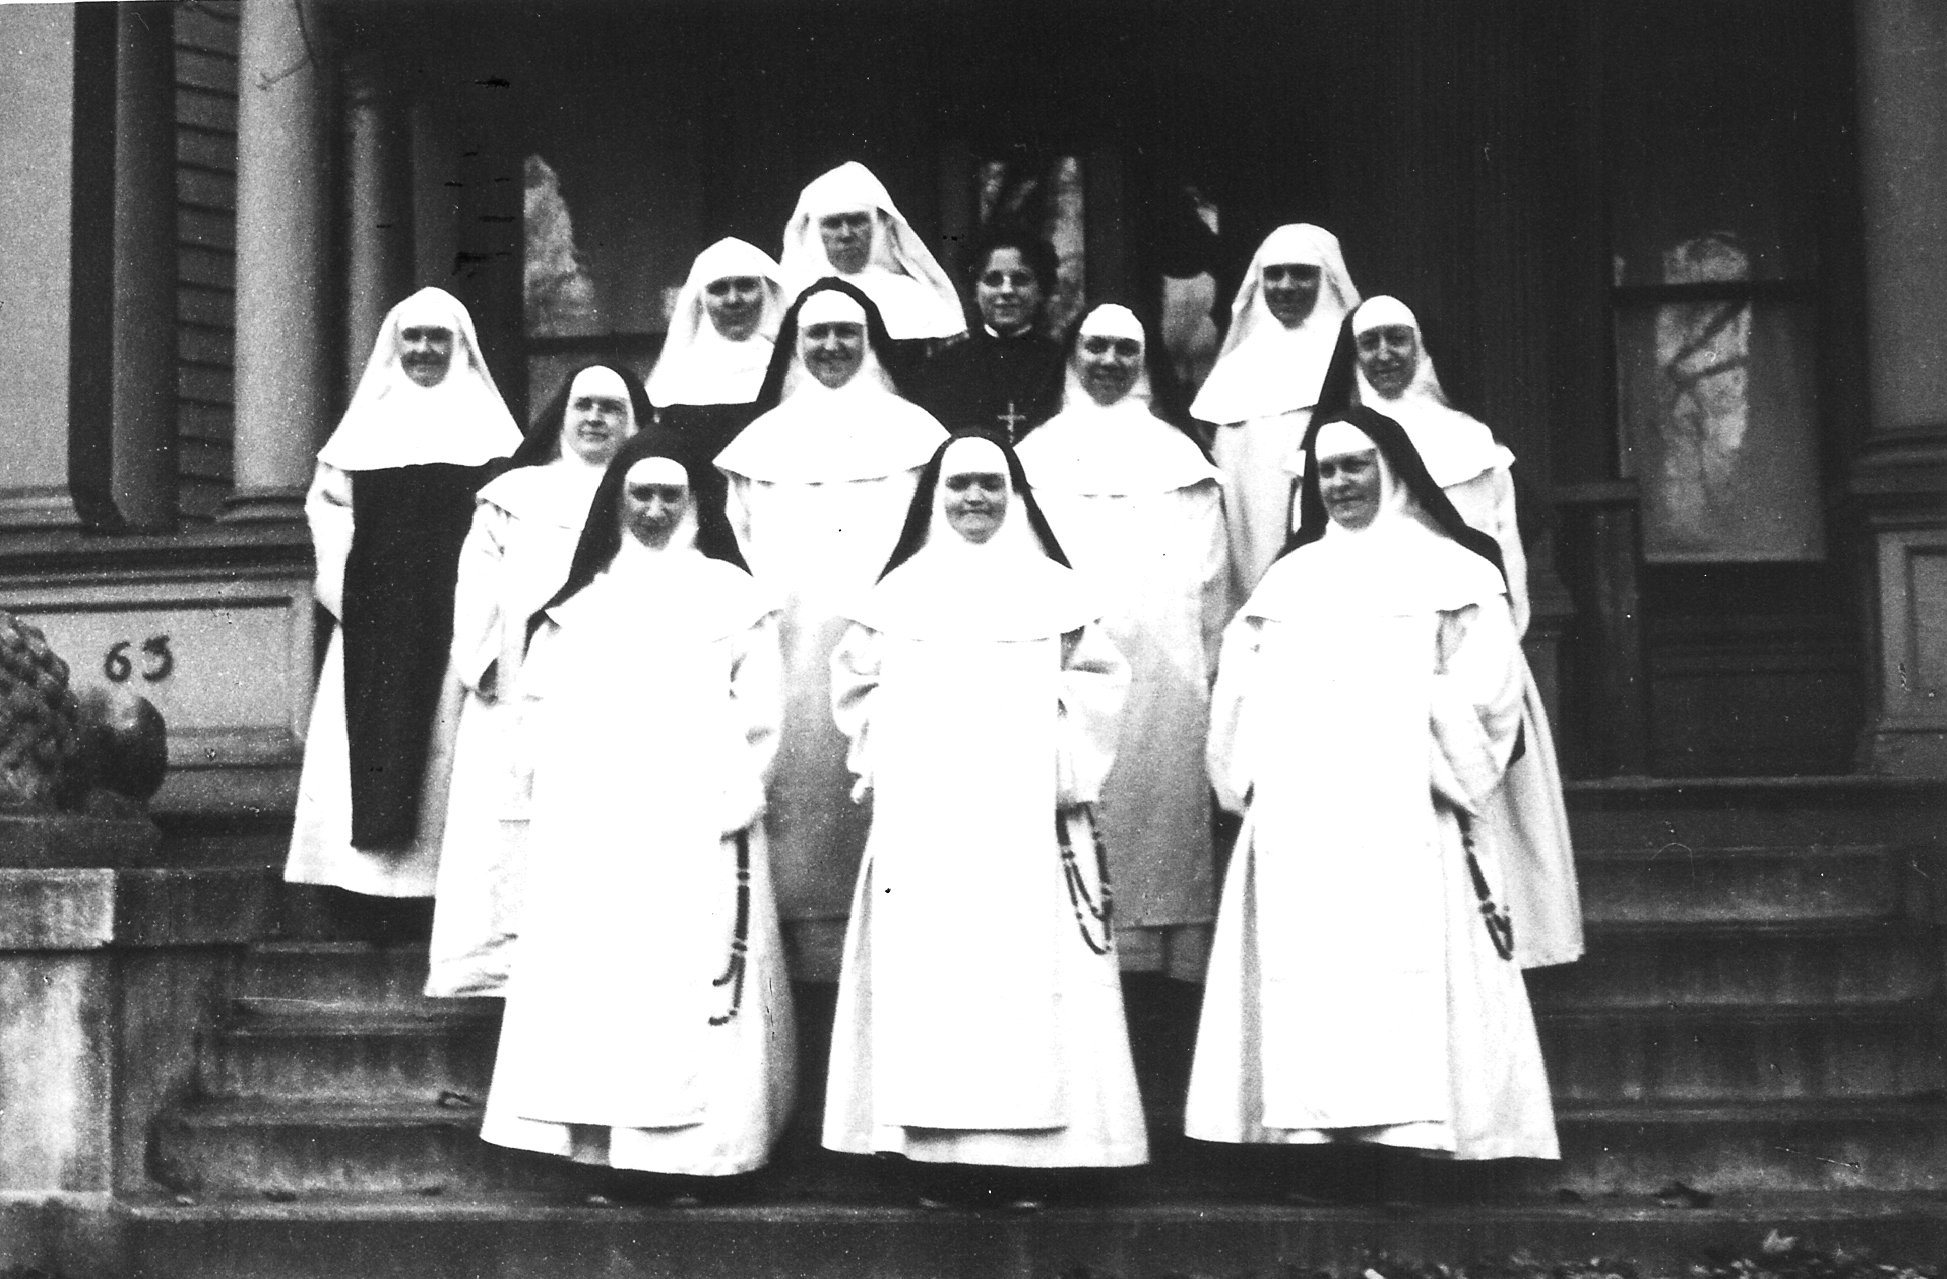 The Foundresses